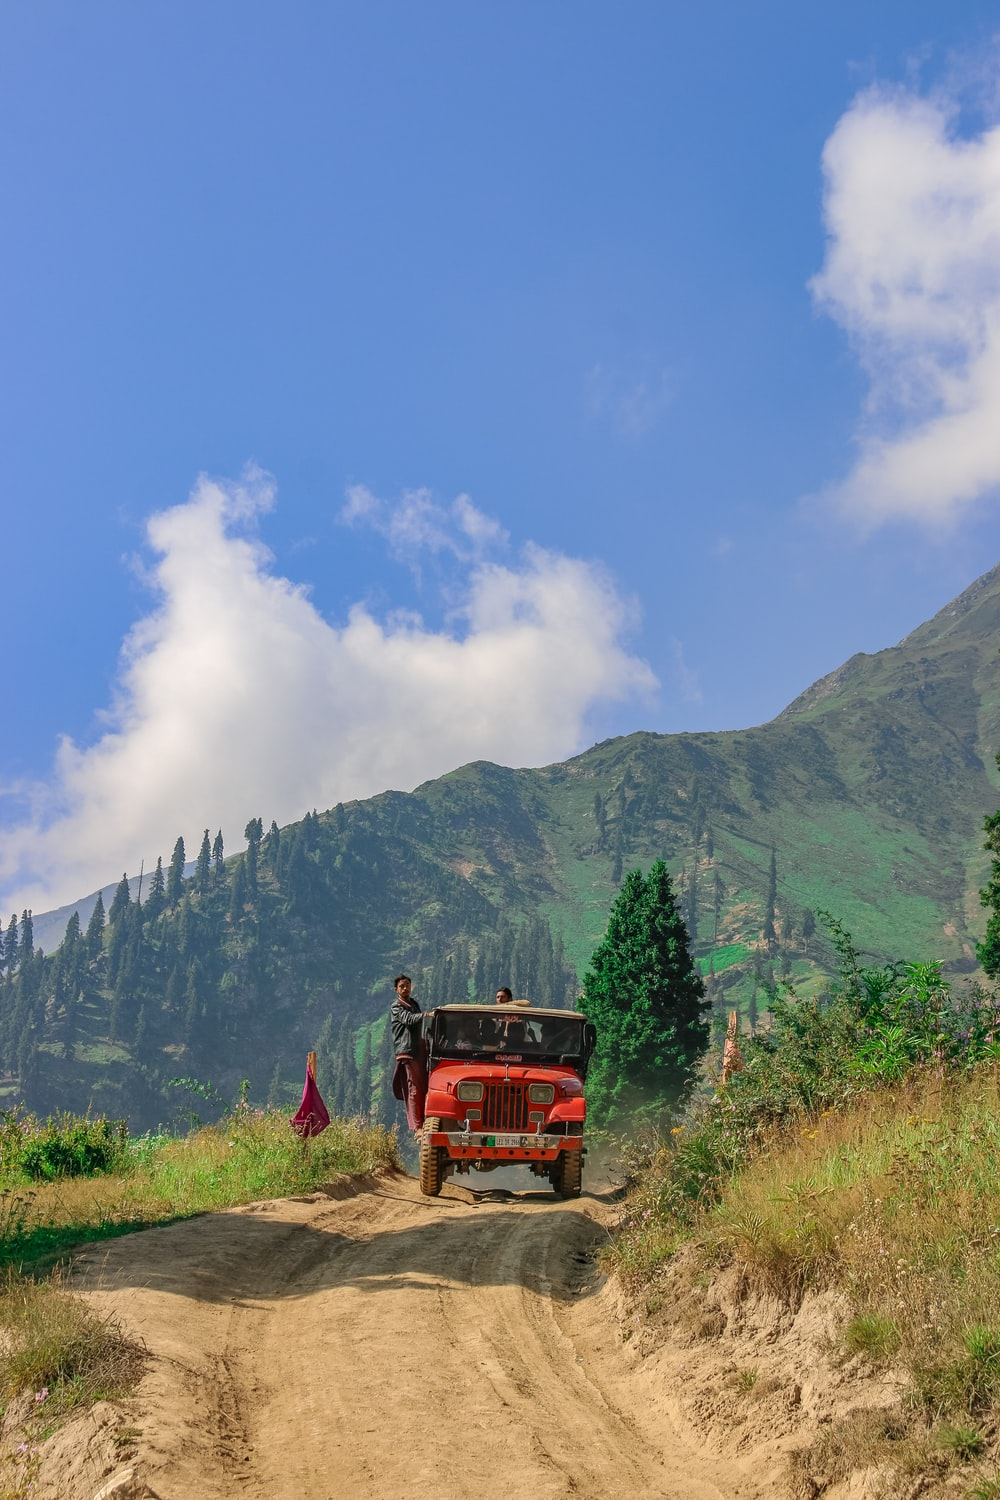 red truck on green grass field near mountain under blue sky during daytime